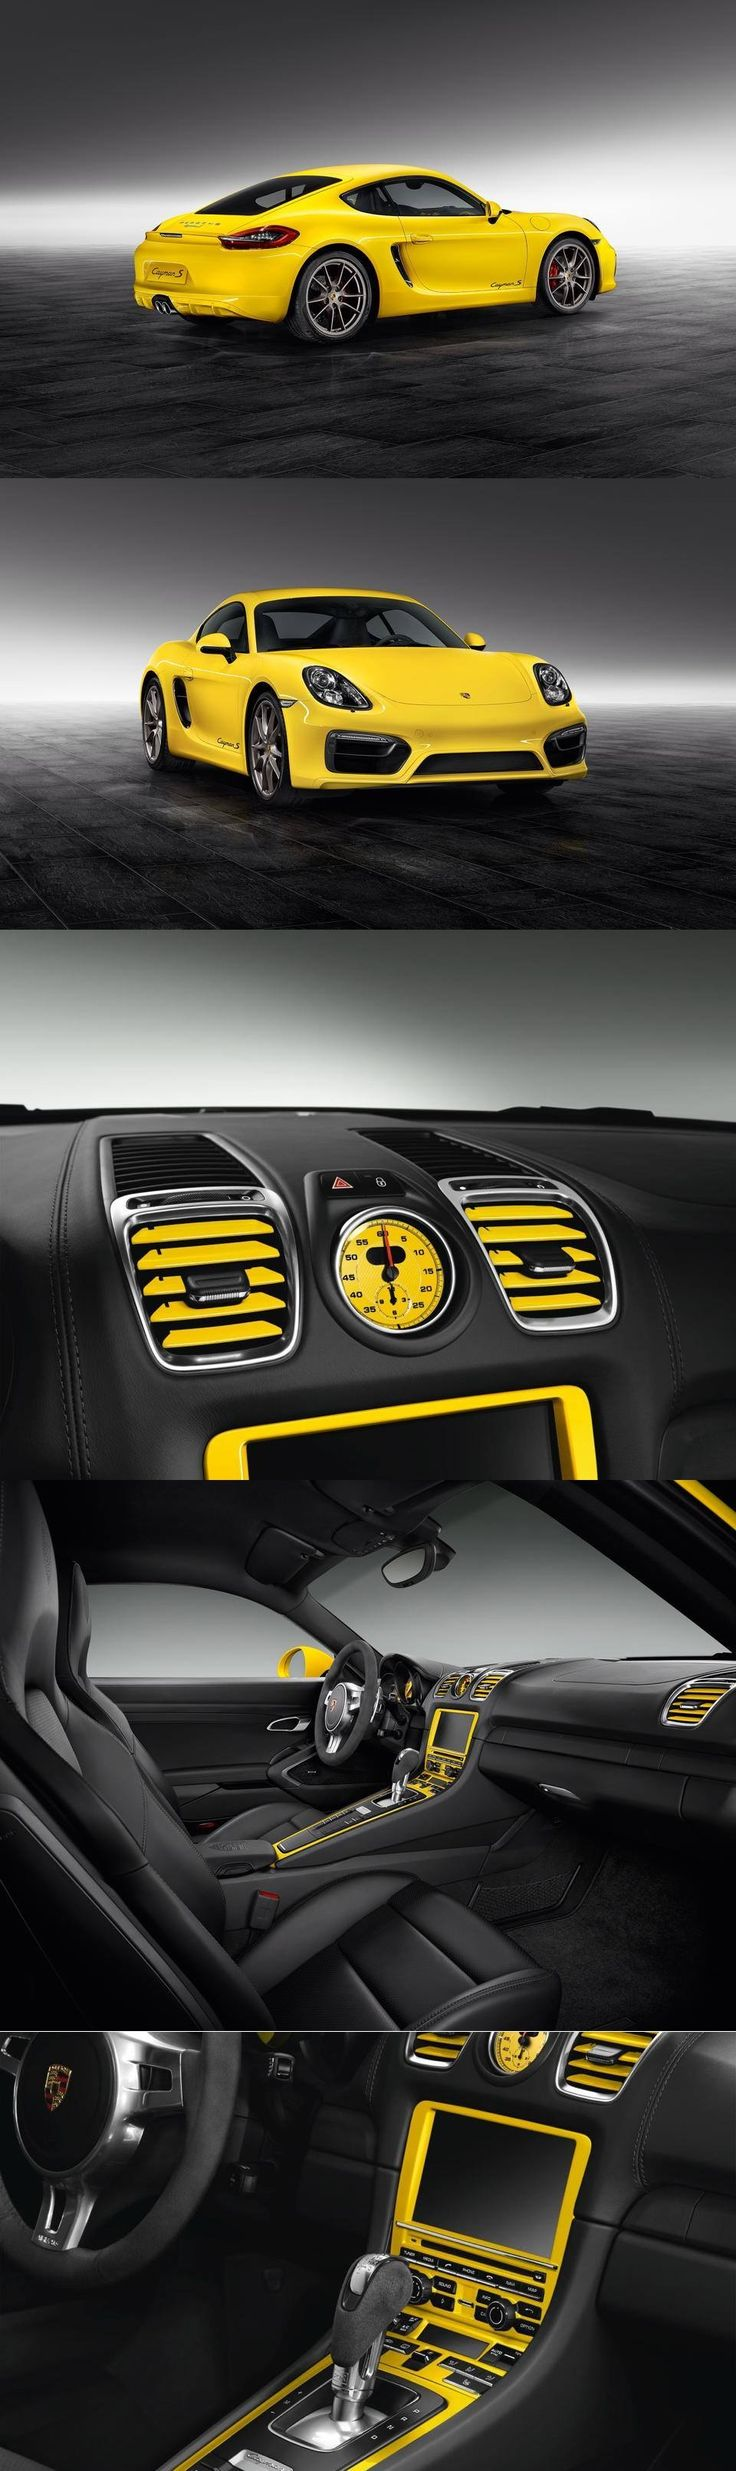 17 best ideas about porsche cars on pinterest luxury cars interior family cars and porsche panamera